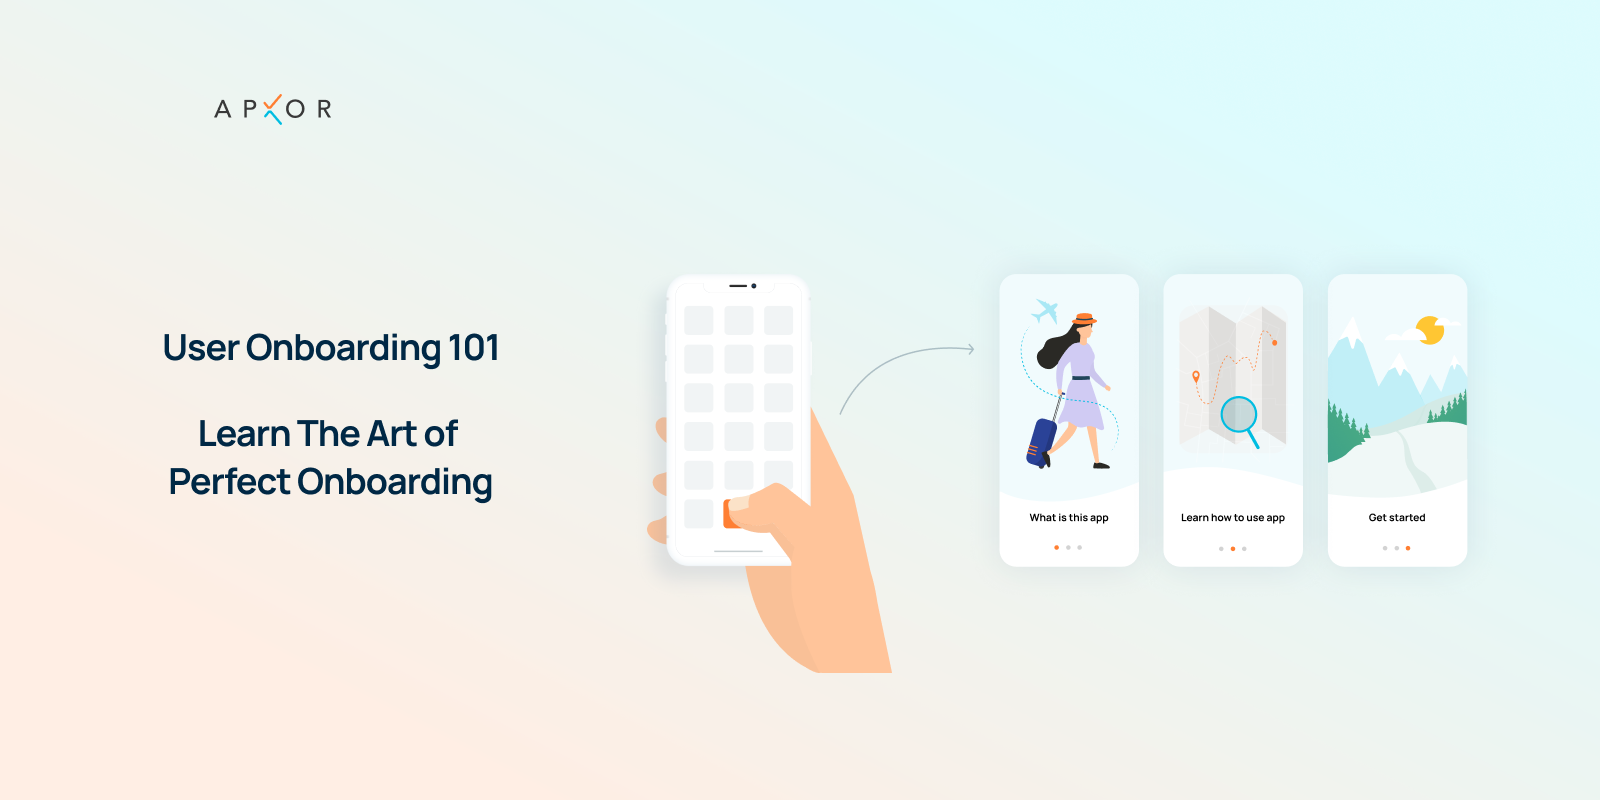 User Onboarding 101 - Learn the Art of Perfect Onboarding